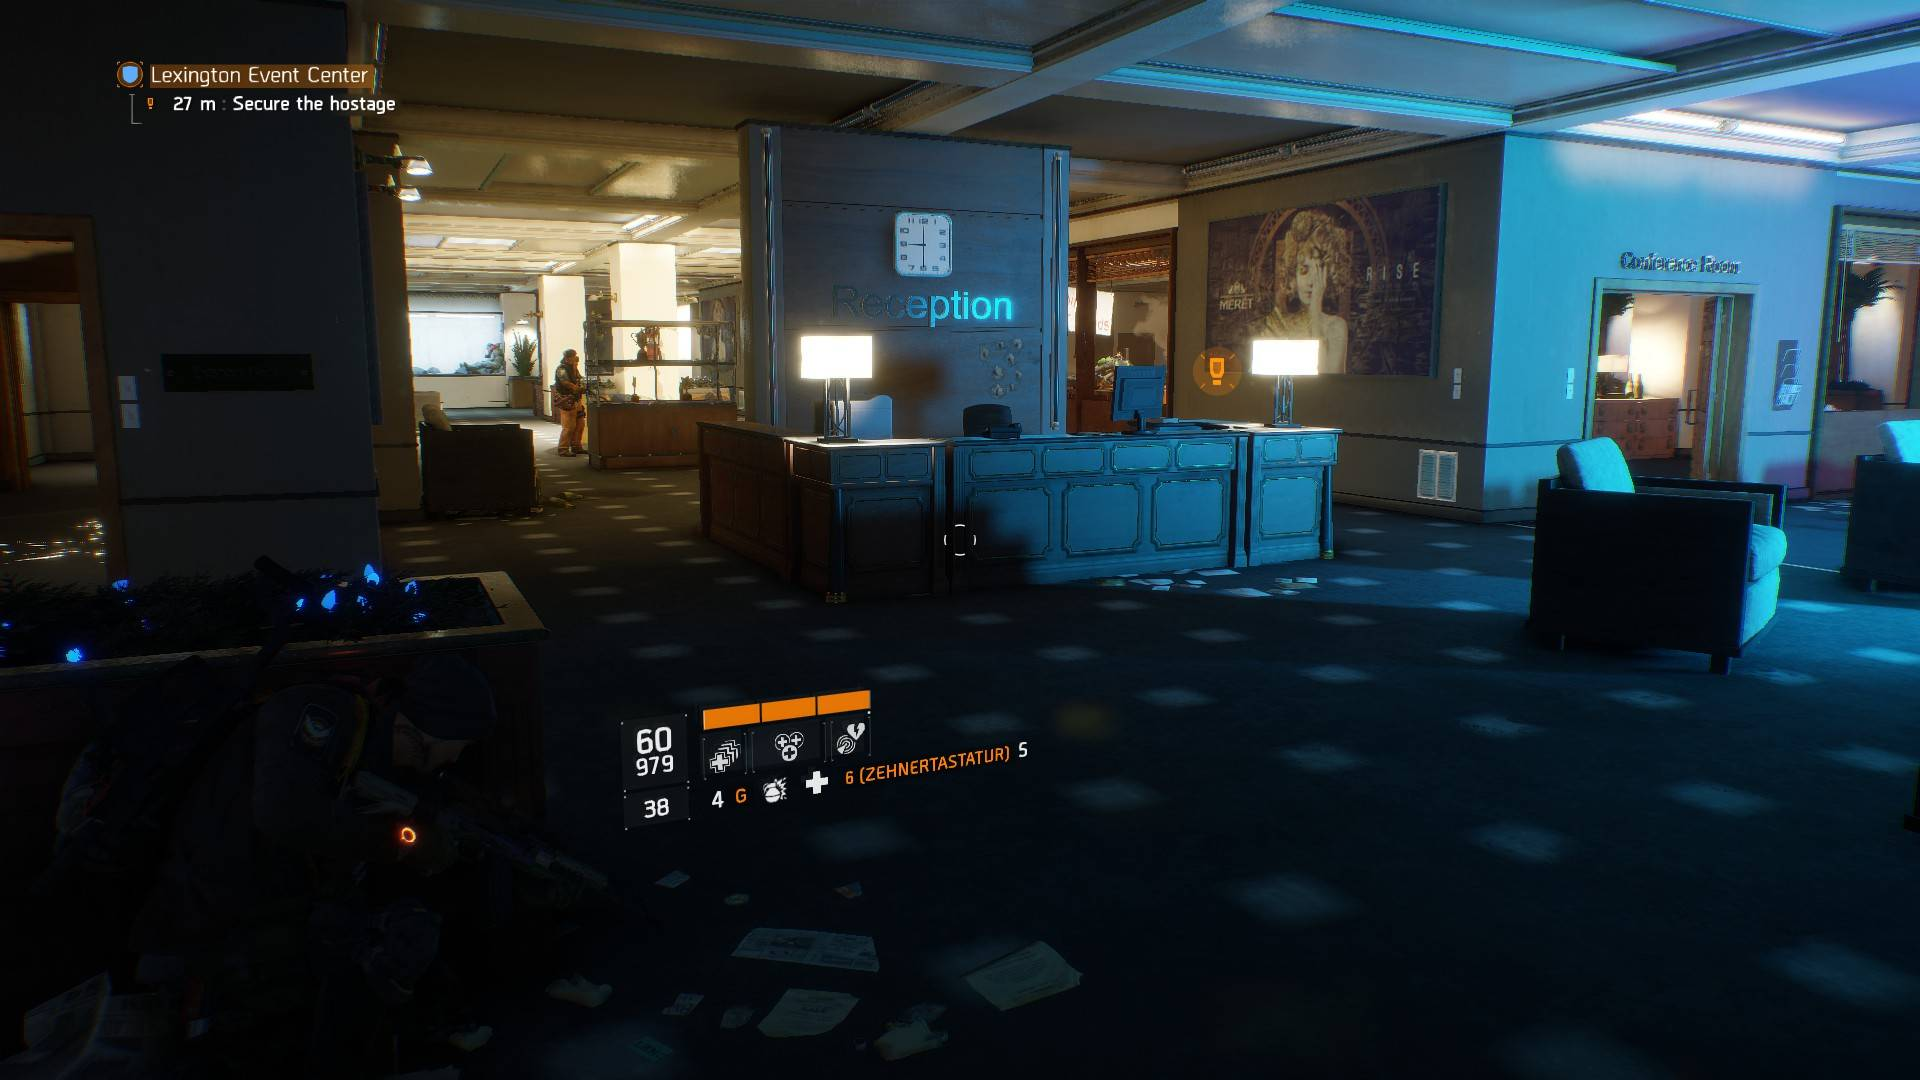 The Division - Lexington Event Center - 2